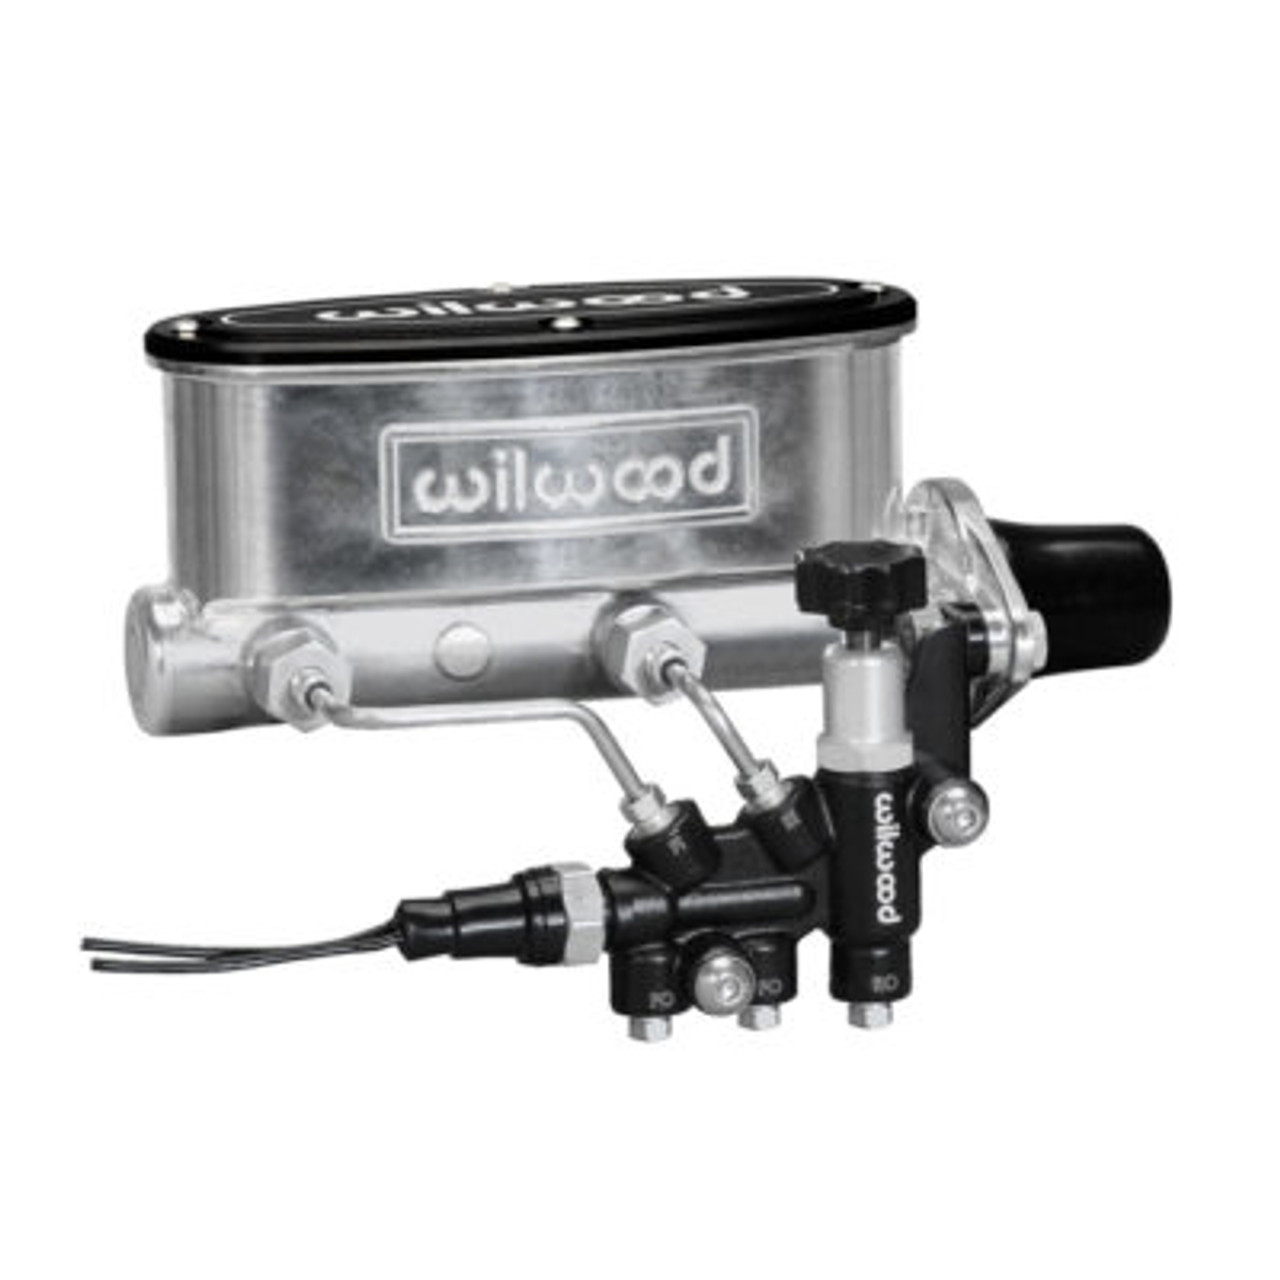 Wilwood Master Cylinder Mount Brake Proportioning Valve kit 260-13190 (MASTER CYLINDER NOT INCLUDED - FOR INSTALLATION REFERENCE ONLY)